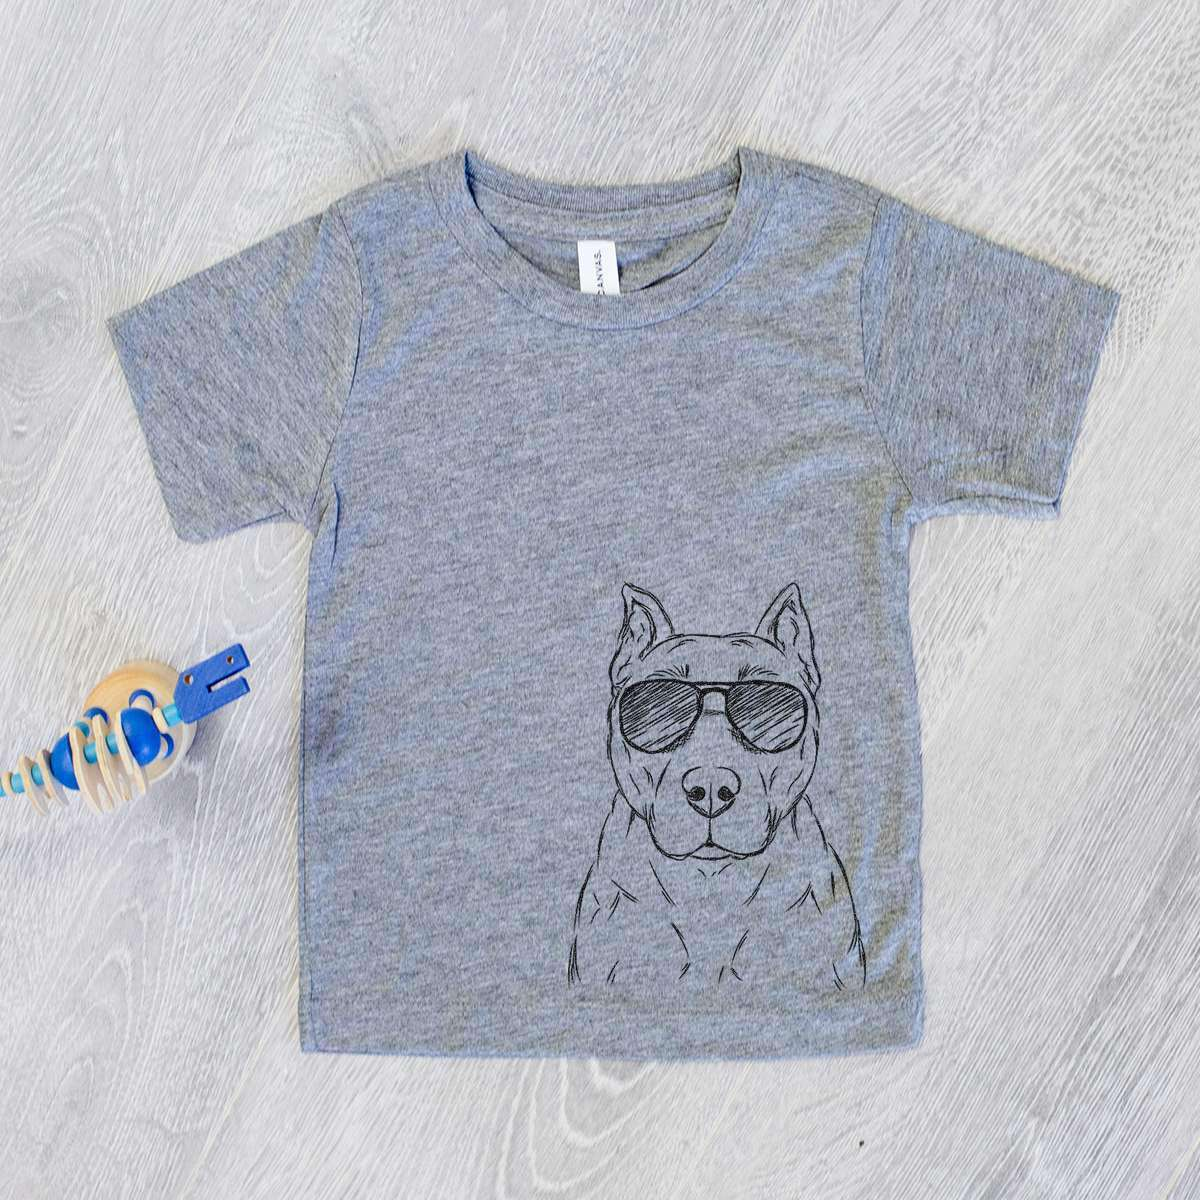 Bane the Bane Staffordshire/Pitbull - Kids/Youth/Toddler Shirt